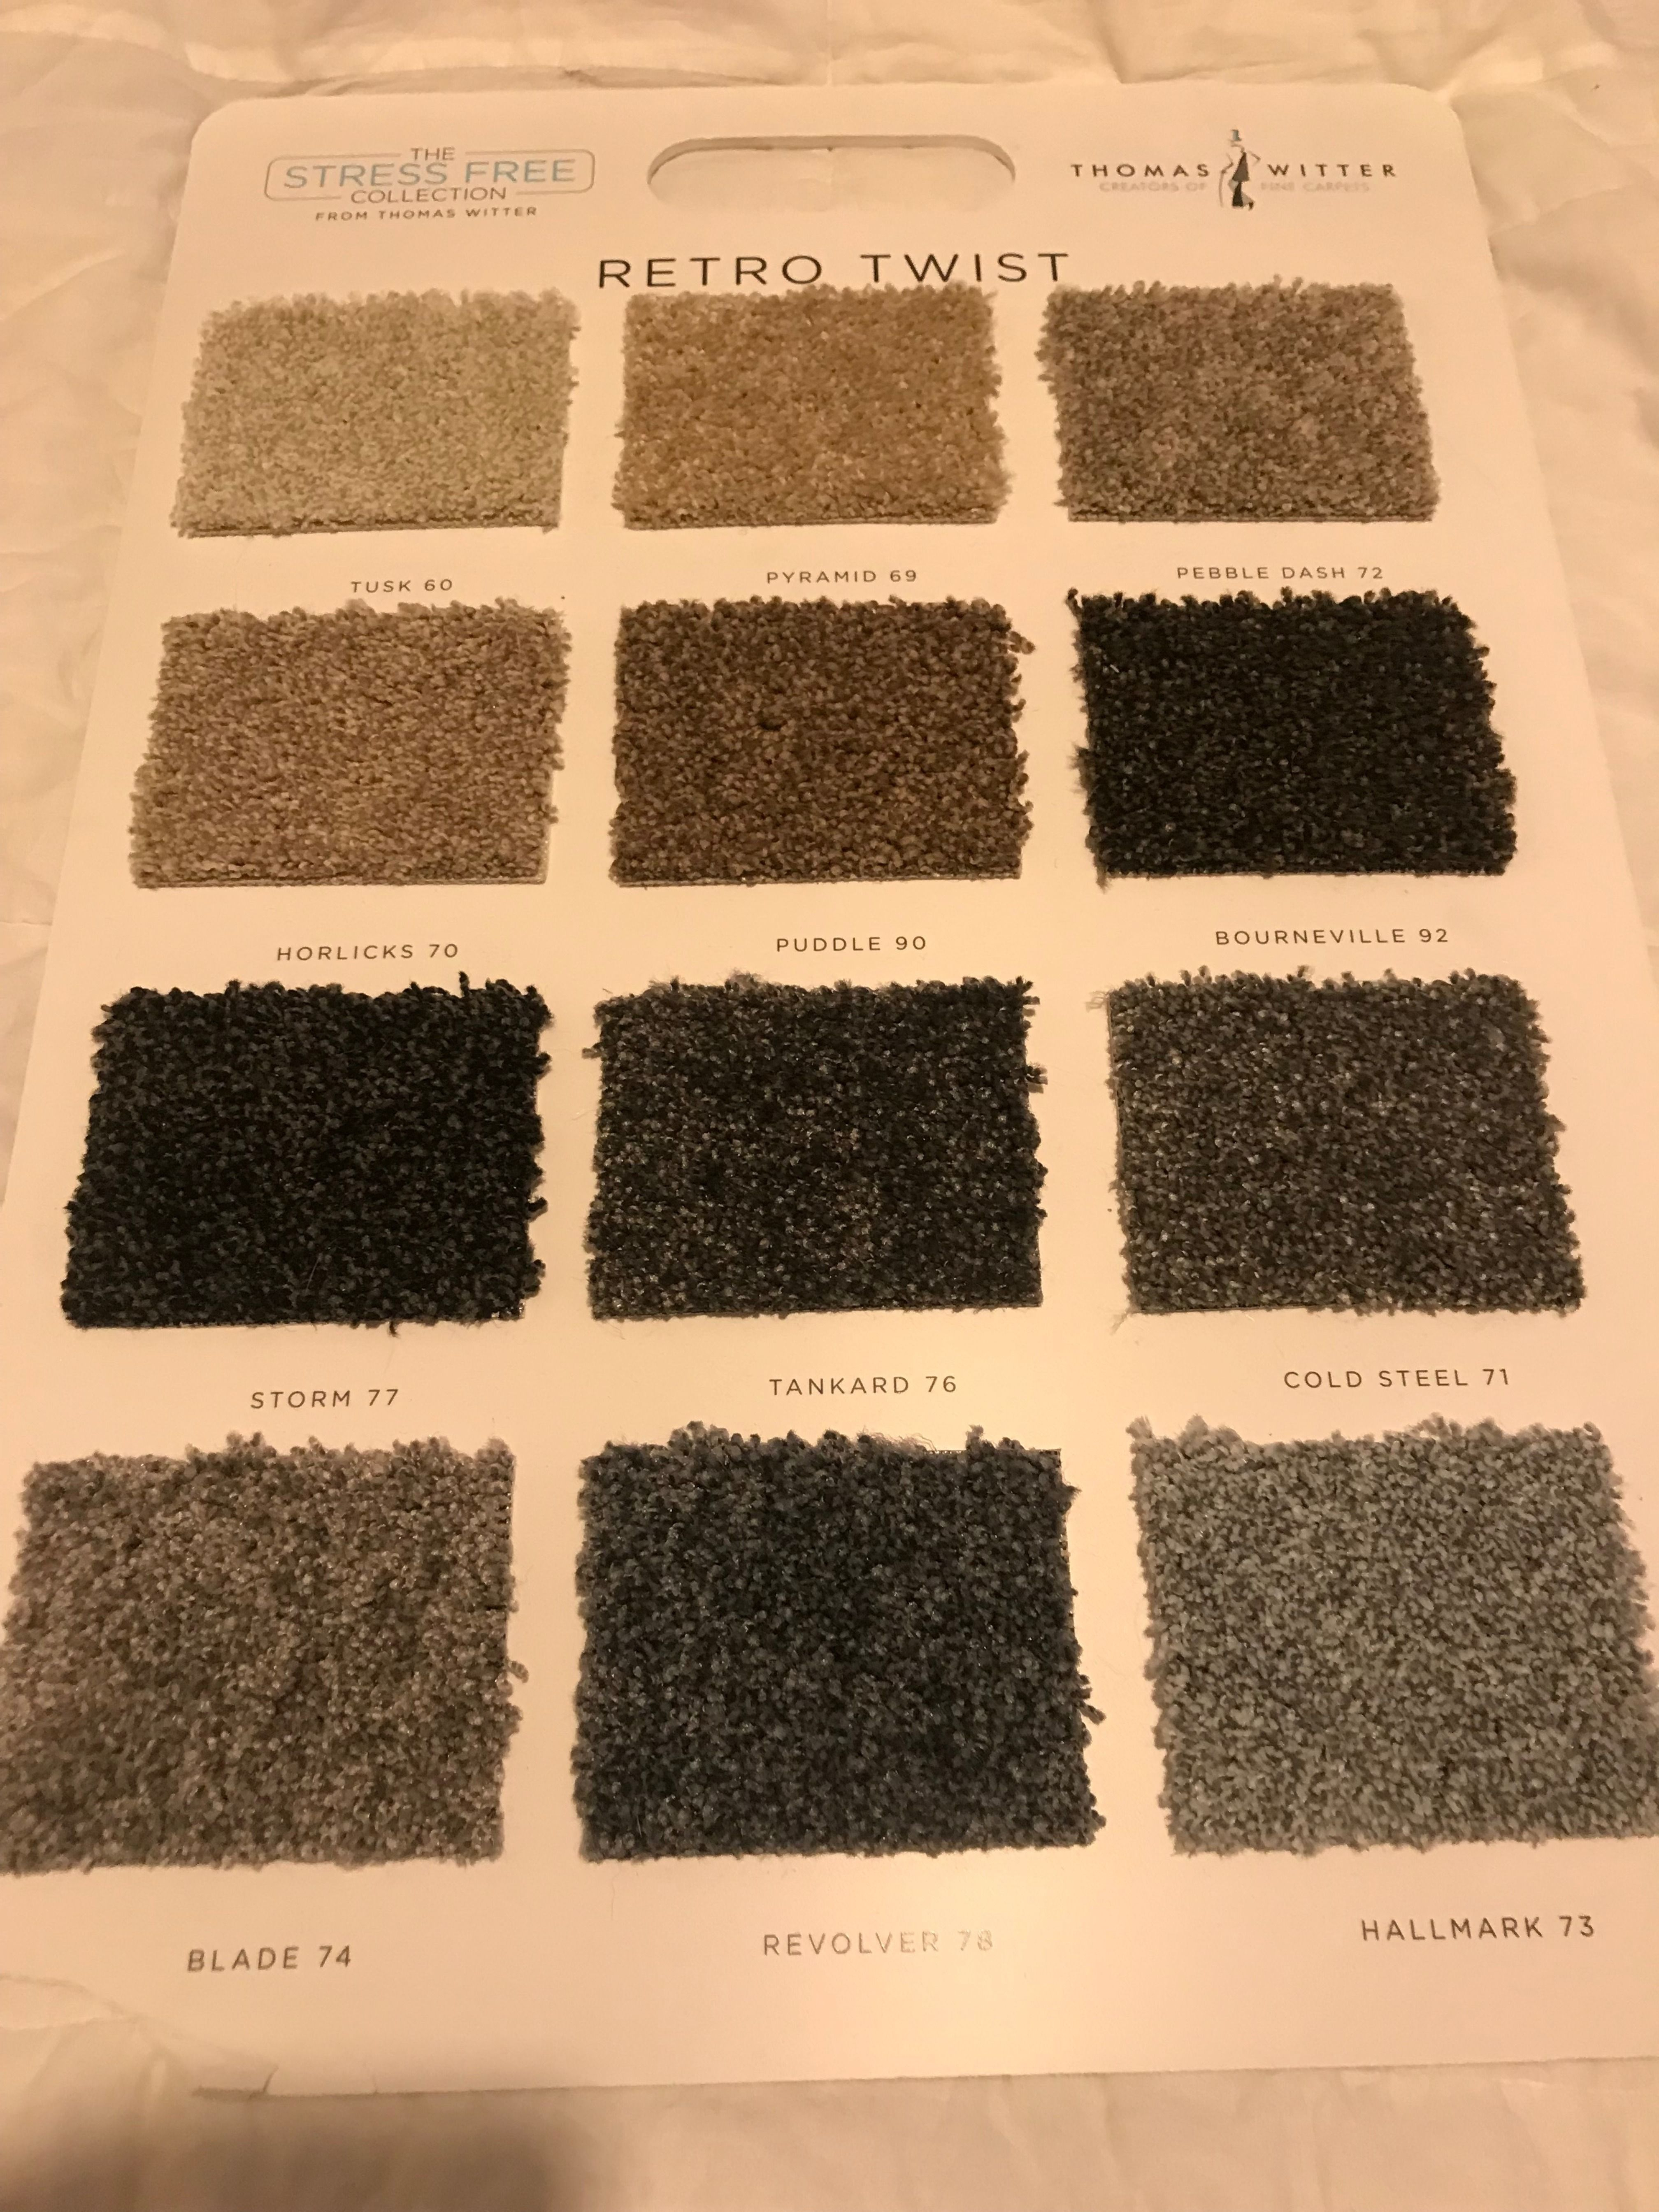 Abroom Flooring Carpet And Vinyl Flooring Specialists In Swansea With Hundreds Of Carpets To Choose From We Bring The Samp Vinyl Flooring Cold Steel Tankard